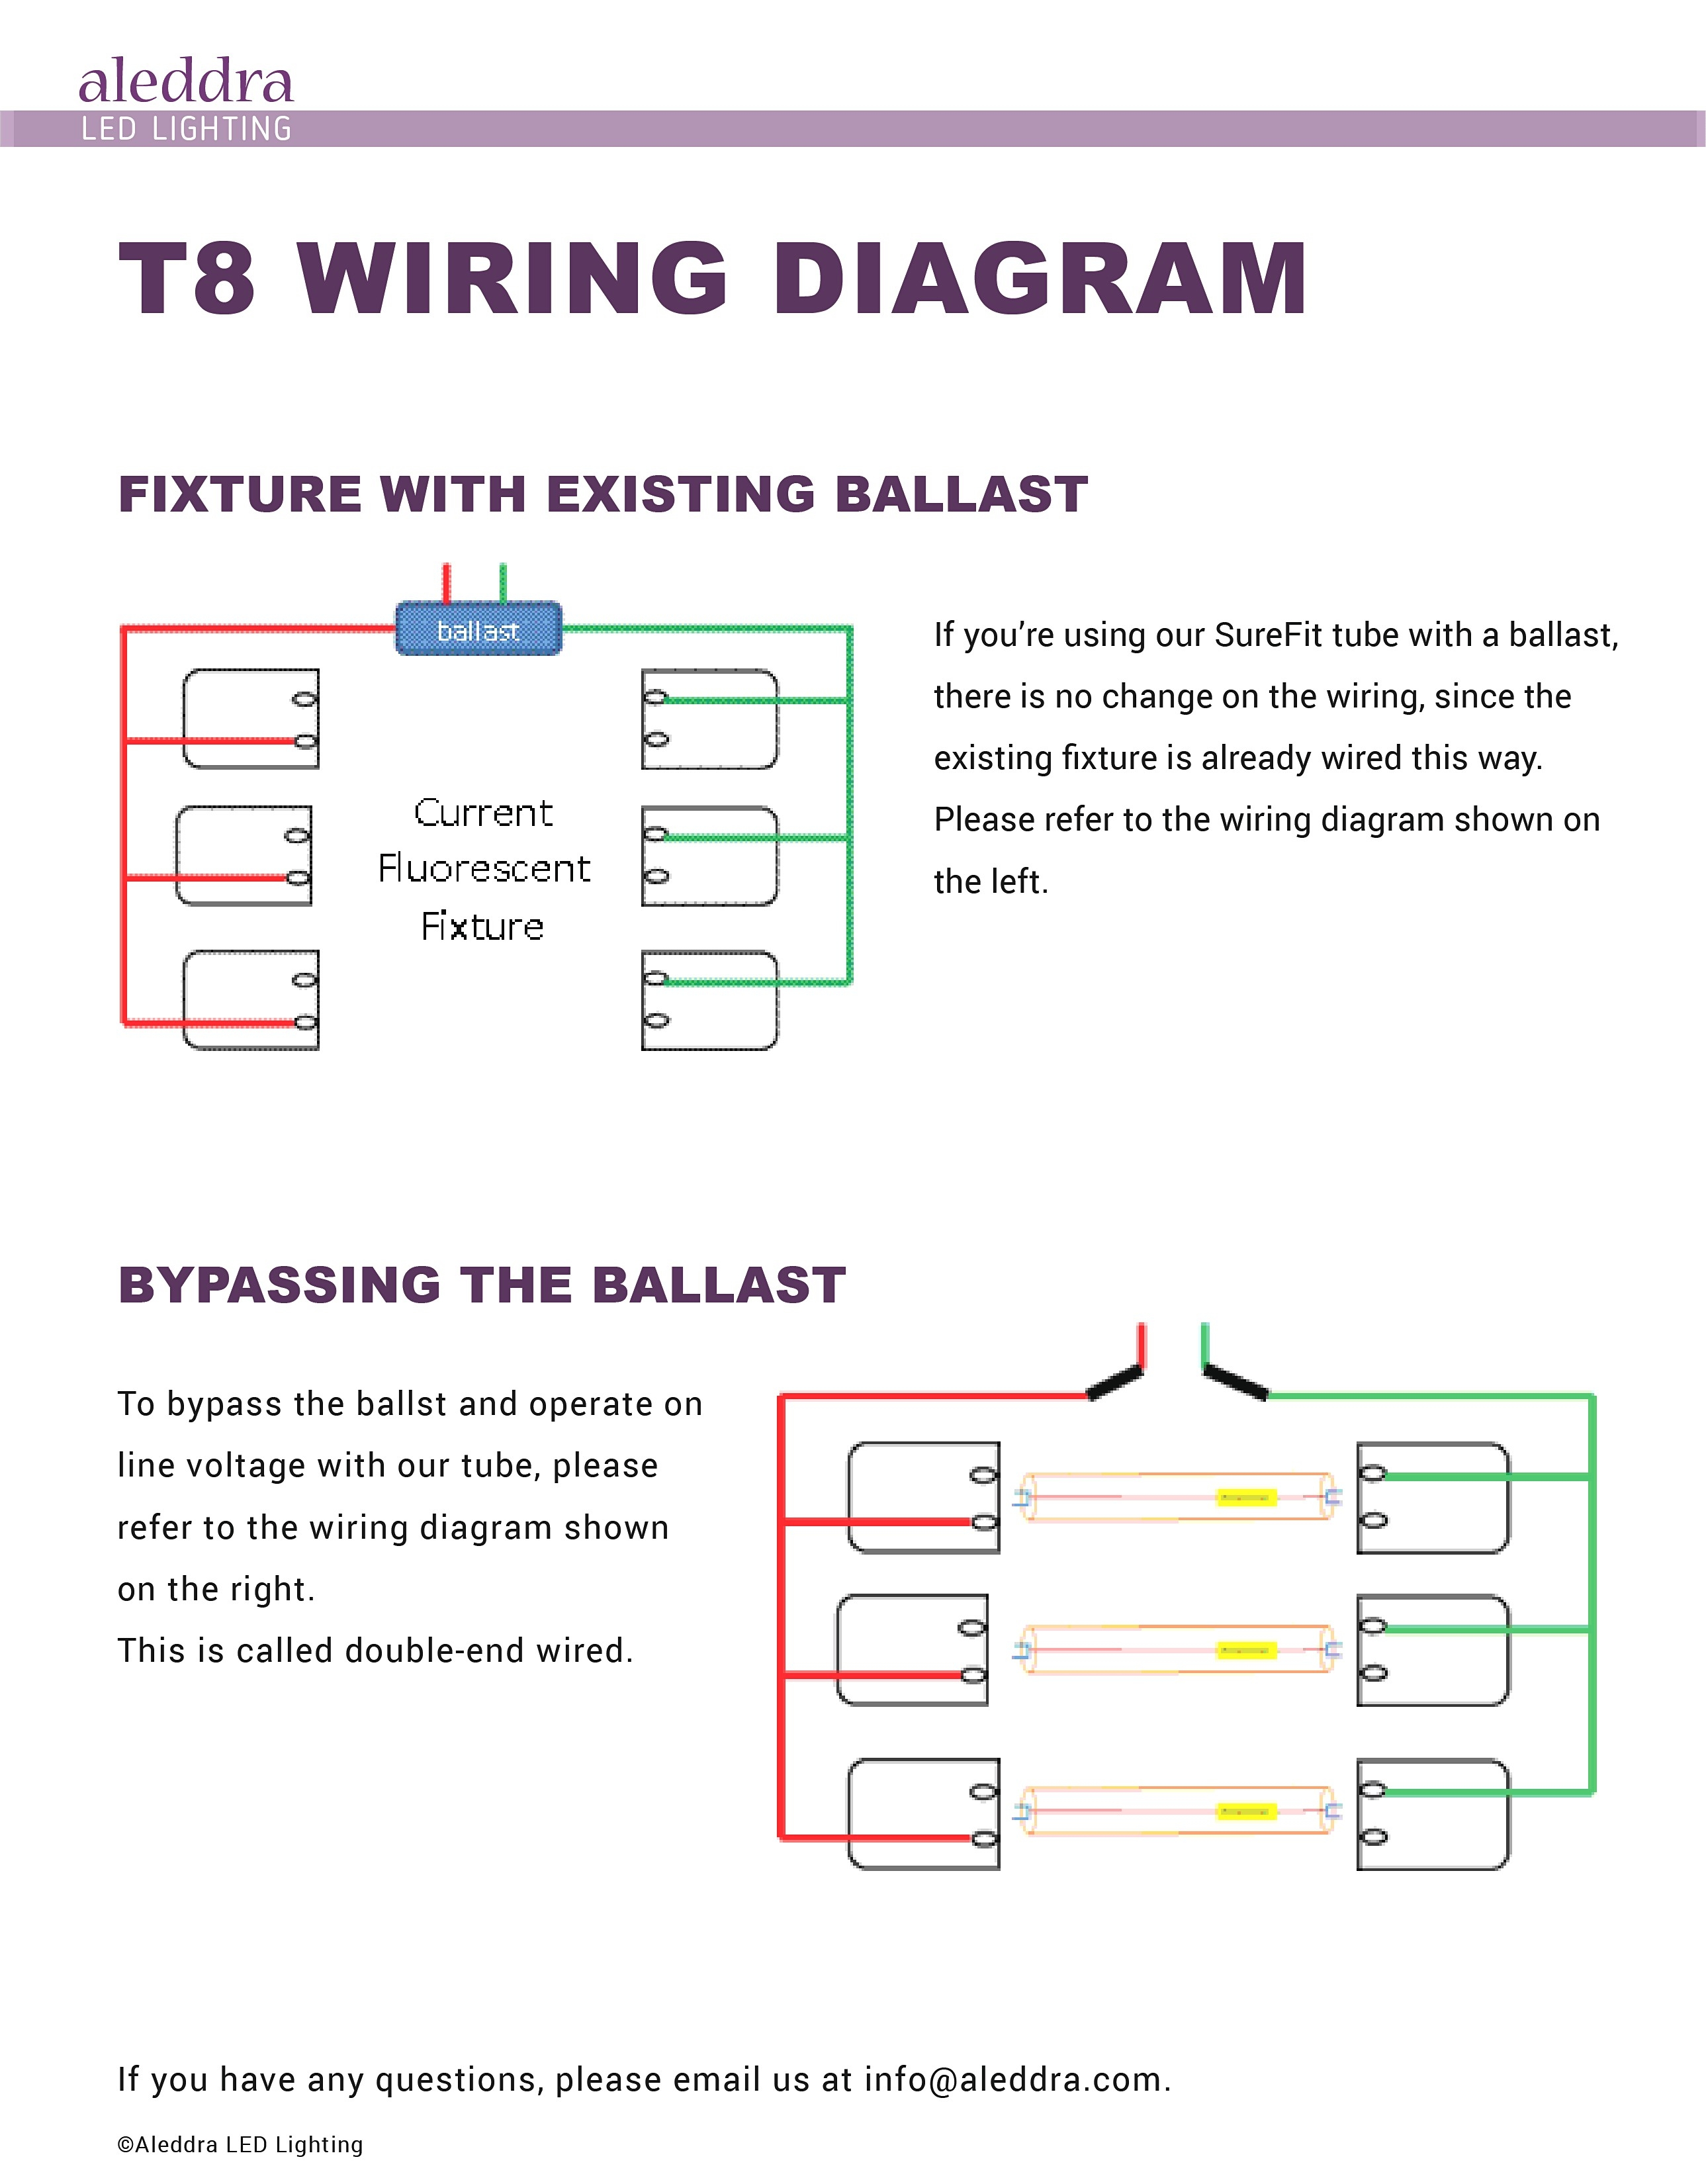 4 Bulb Ballast Wiring Diagram Prostart | Wiring Diagram  Bulb T Ballast Wiring Diagram on f20t12 wiring diagram, fluorescent light ballast diagram, t12 ballast connector, t12 electronic ballast, 2 lamp wiring diagram, t12 to t8 ballast wiring, compact fluorescent wiring diagram, fluorescent light wiring diagram, metal halide wiring diagram, t12 to t5 retrofit kit, t12 magnetic ballast, t12 to t8 conversion diagram, t12 compression fracture, t12 ballast specifications, t12 bulbs,